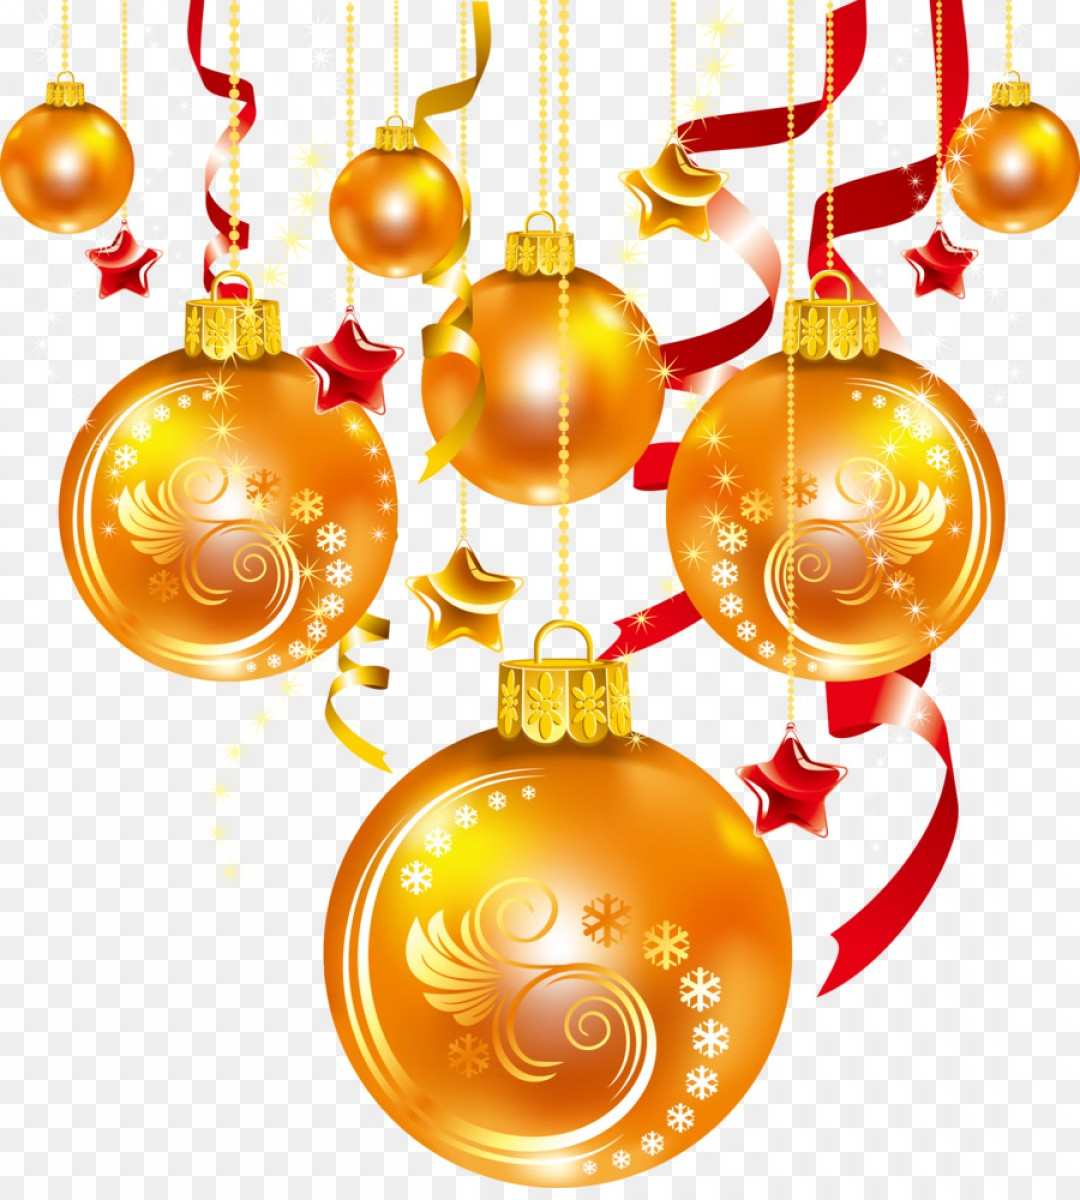 Png Christmas Ornament Clip Art Vector Christmas Ball.